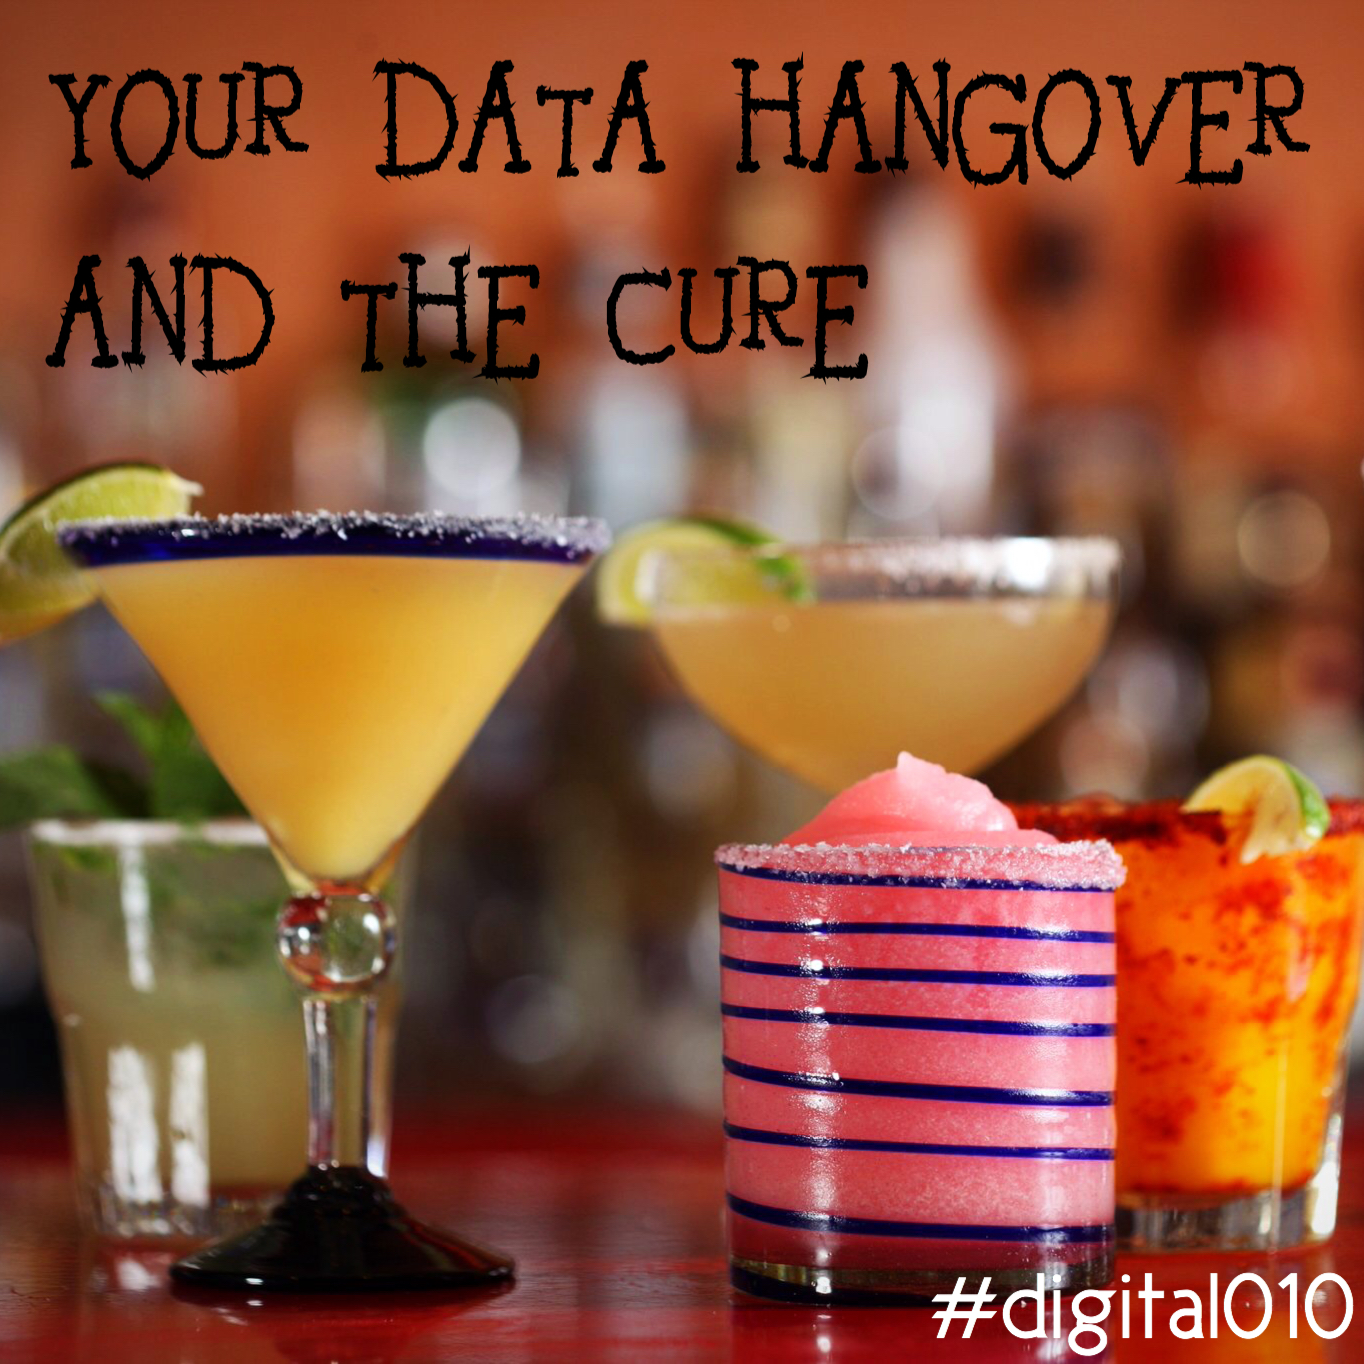 OUR 20TH CENTURY DATA HANGOVER AND THE CURE